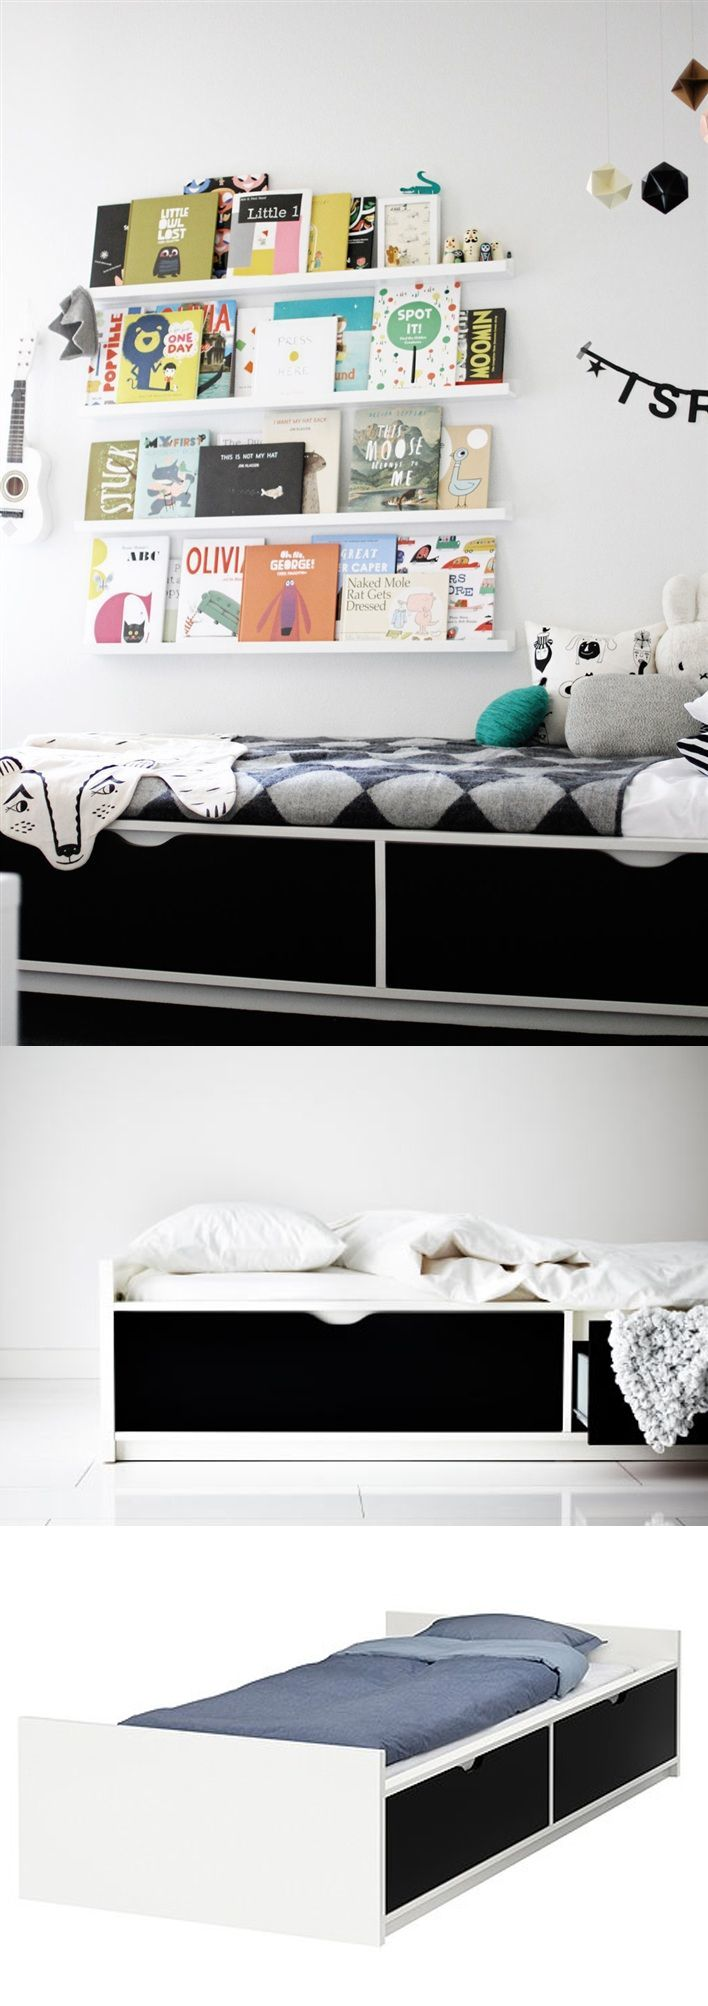 flaxa ikea new basement bed for the creature ikea hacks. Black Bedroom Furniture Sets. Home Design Ideas